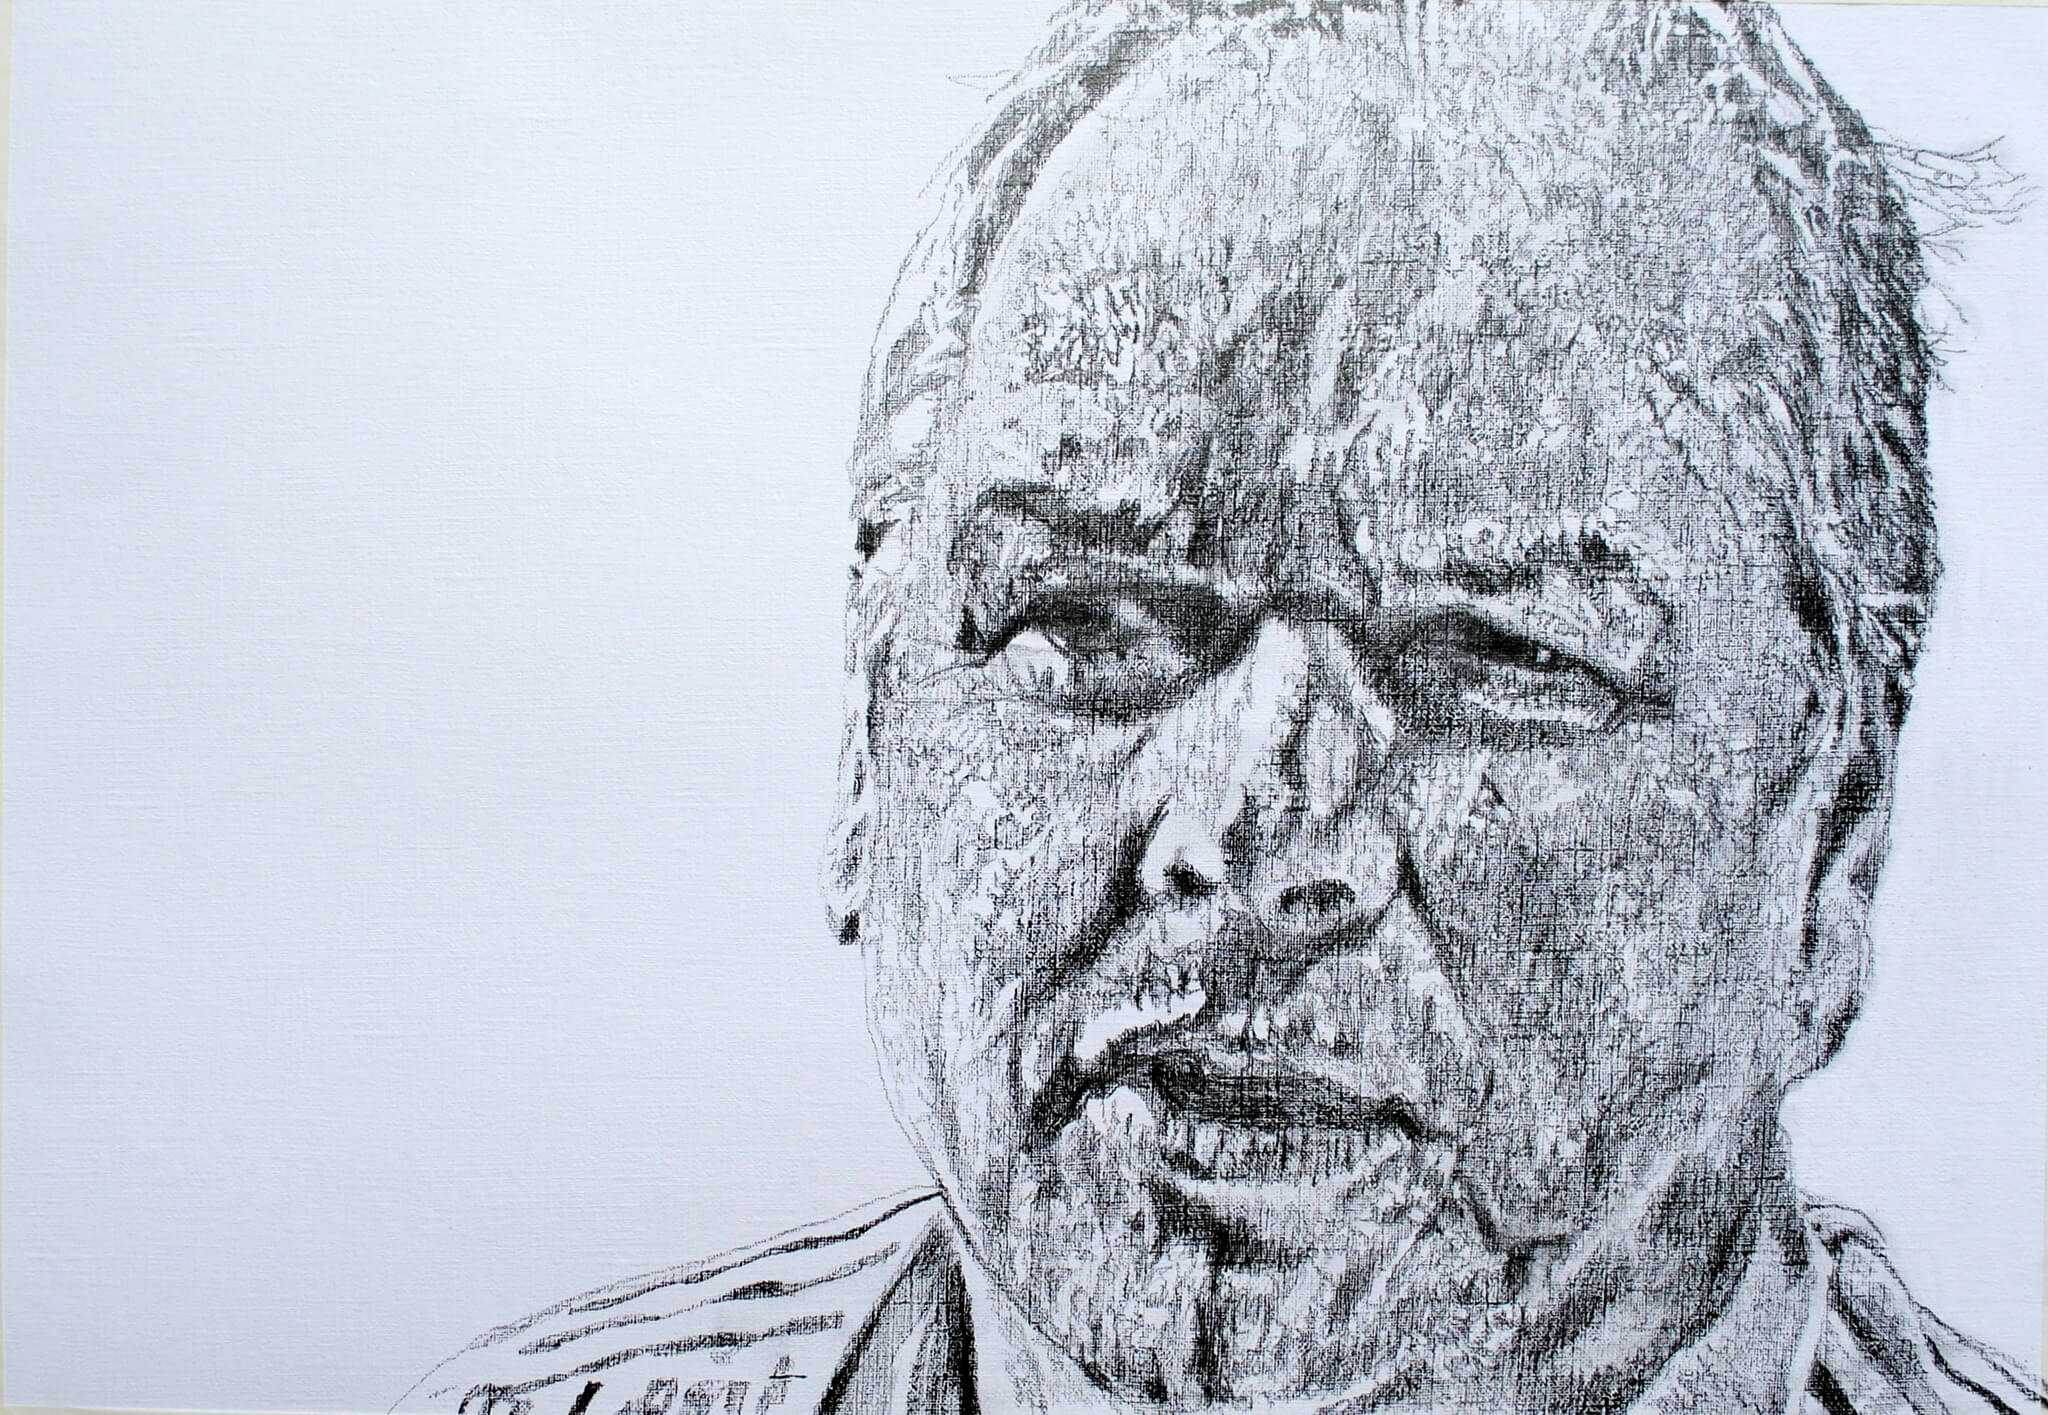 Sky News Editor at Large Adam Boulton pencil on paper portrait artwork by Stella Tooth.